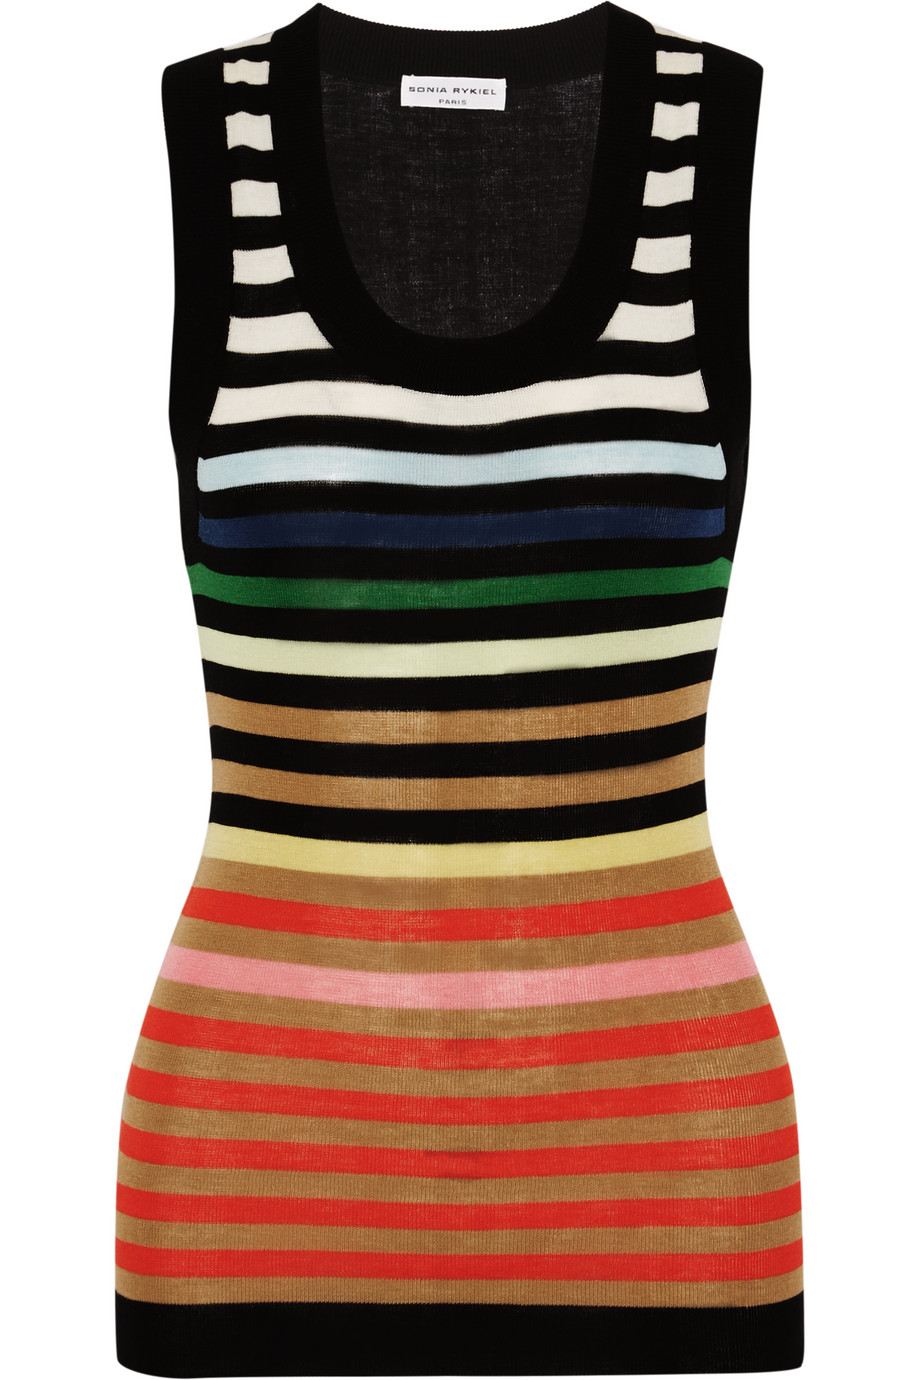 Sonia Rykiel Striped Cotton and Silk-Blend Tank, Black/Orange, Women's, Size: XL